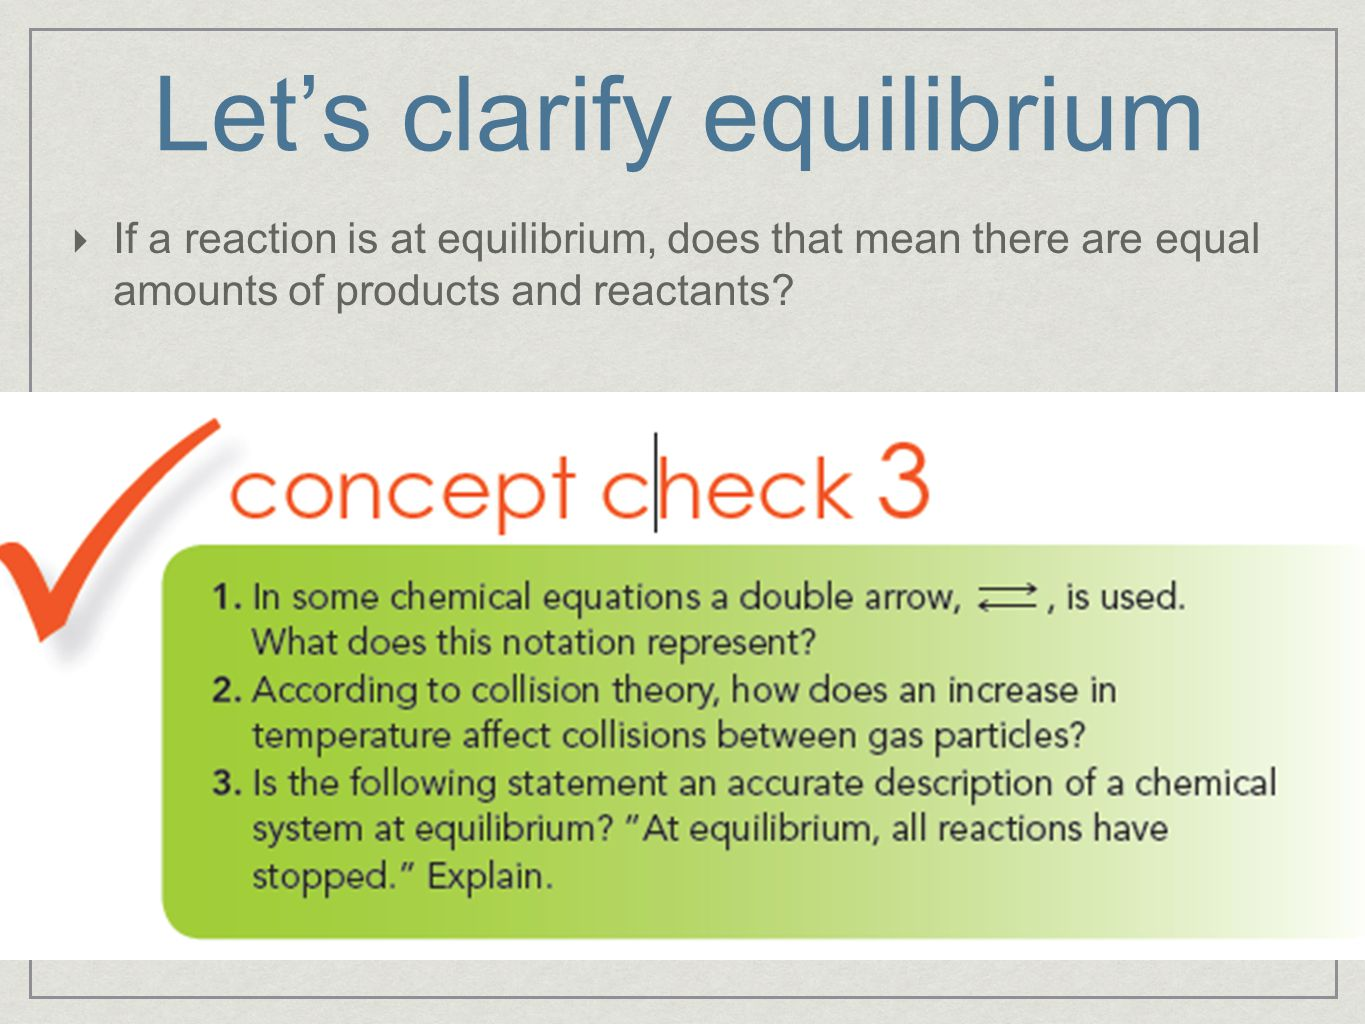 Let's clarify equilibrium